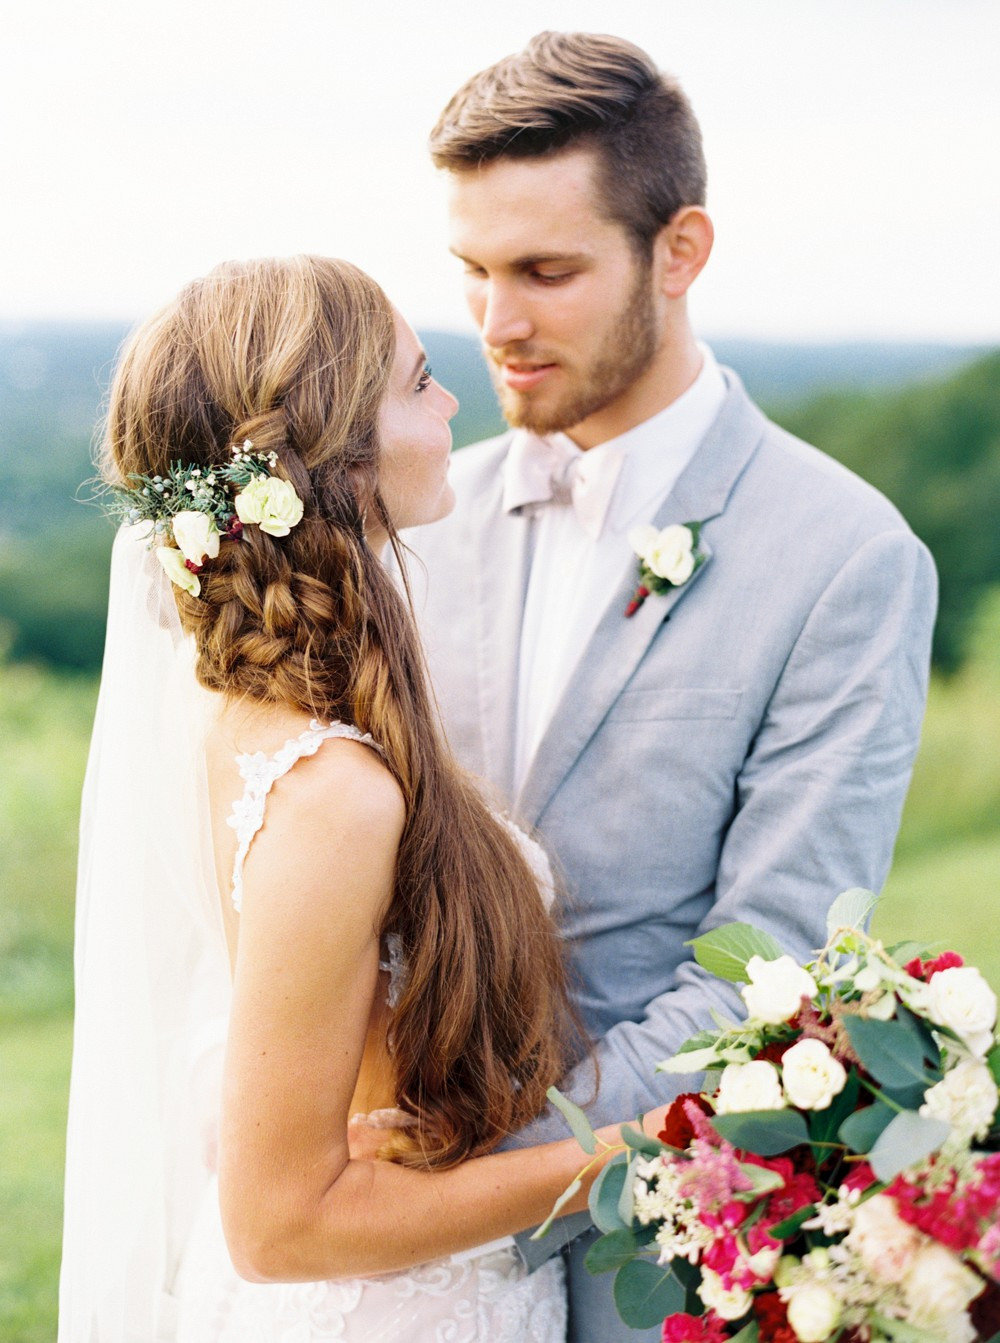 Kendra and David's Elegant Tennessee Countryside Wedding